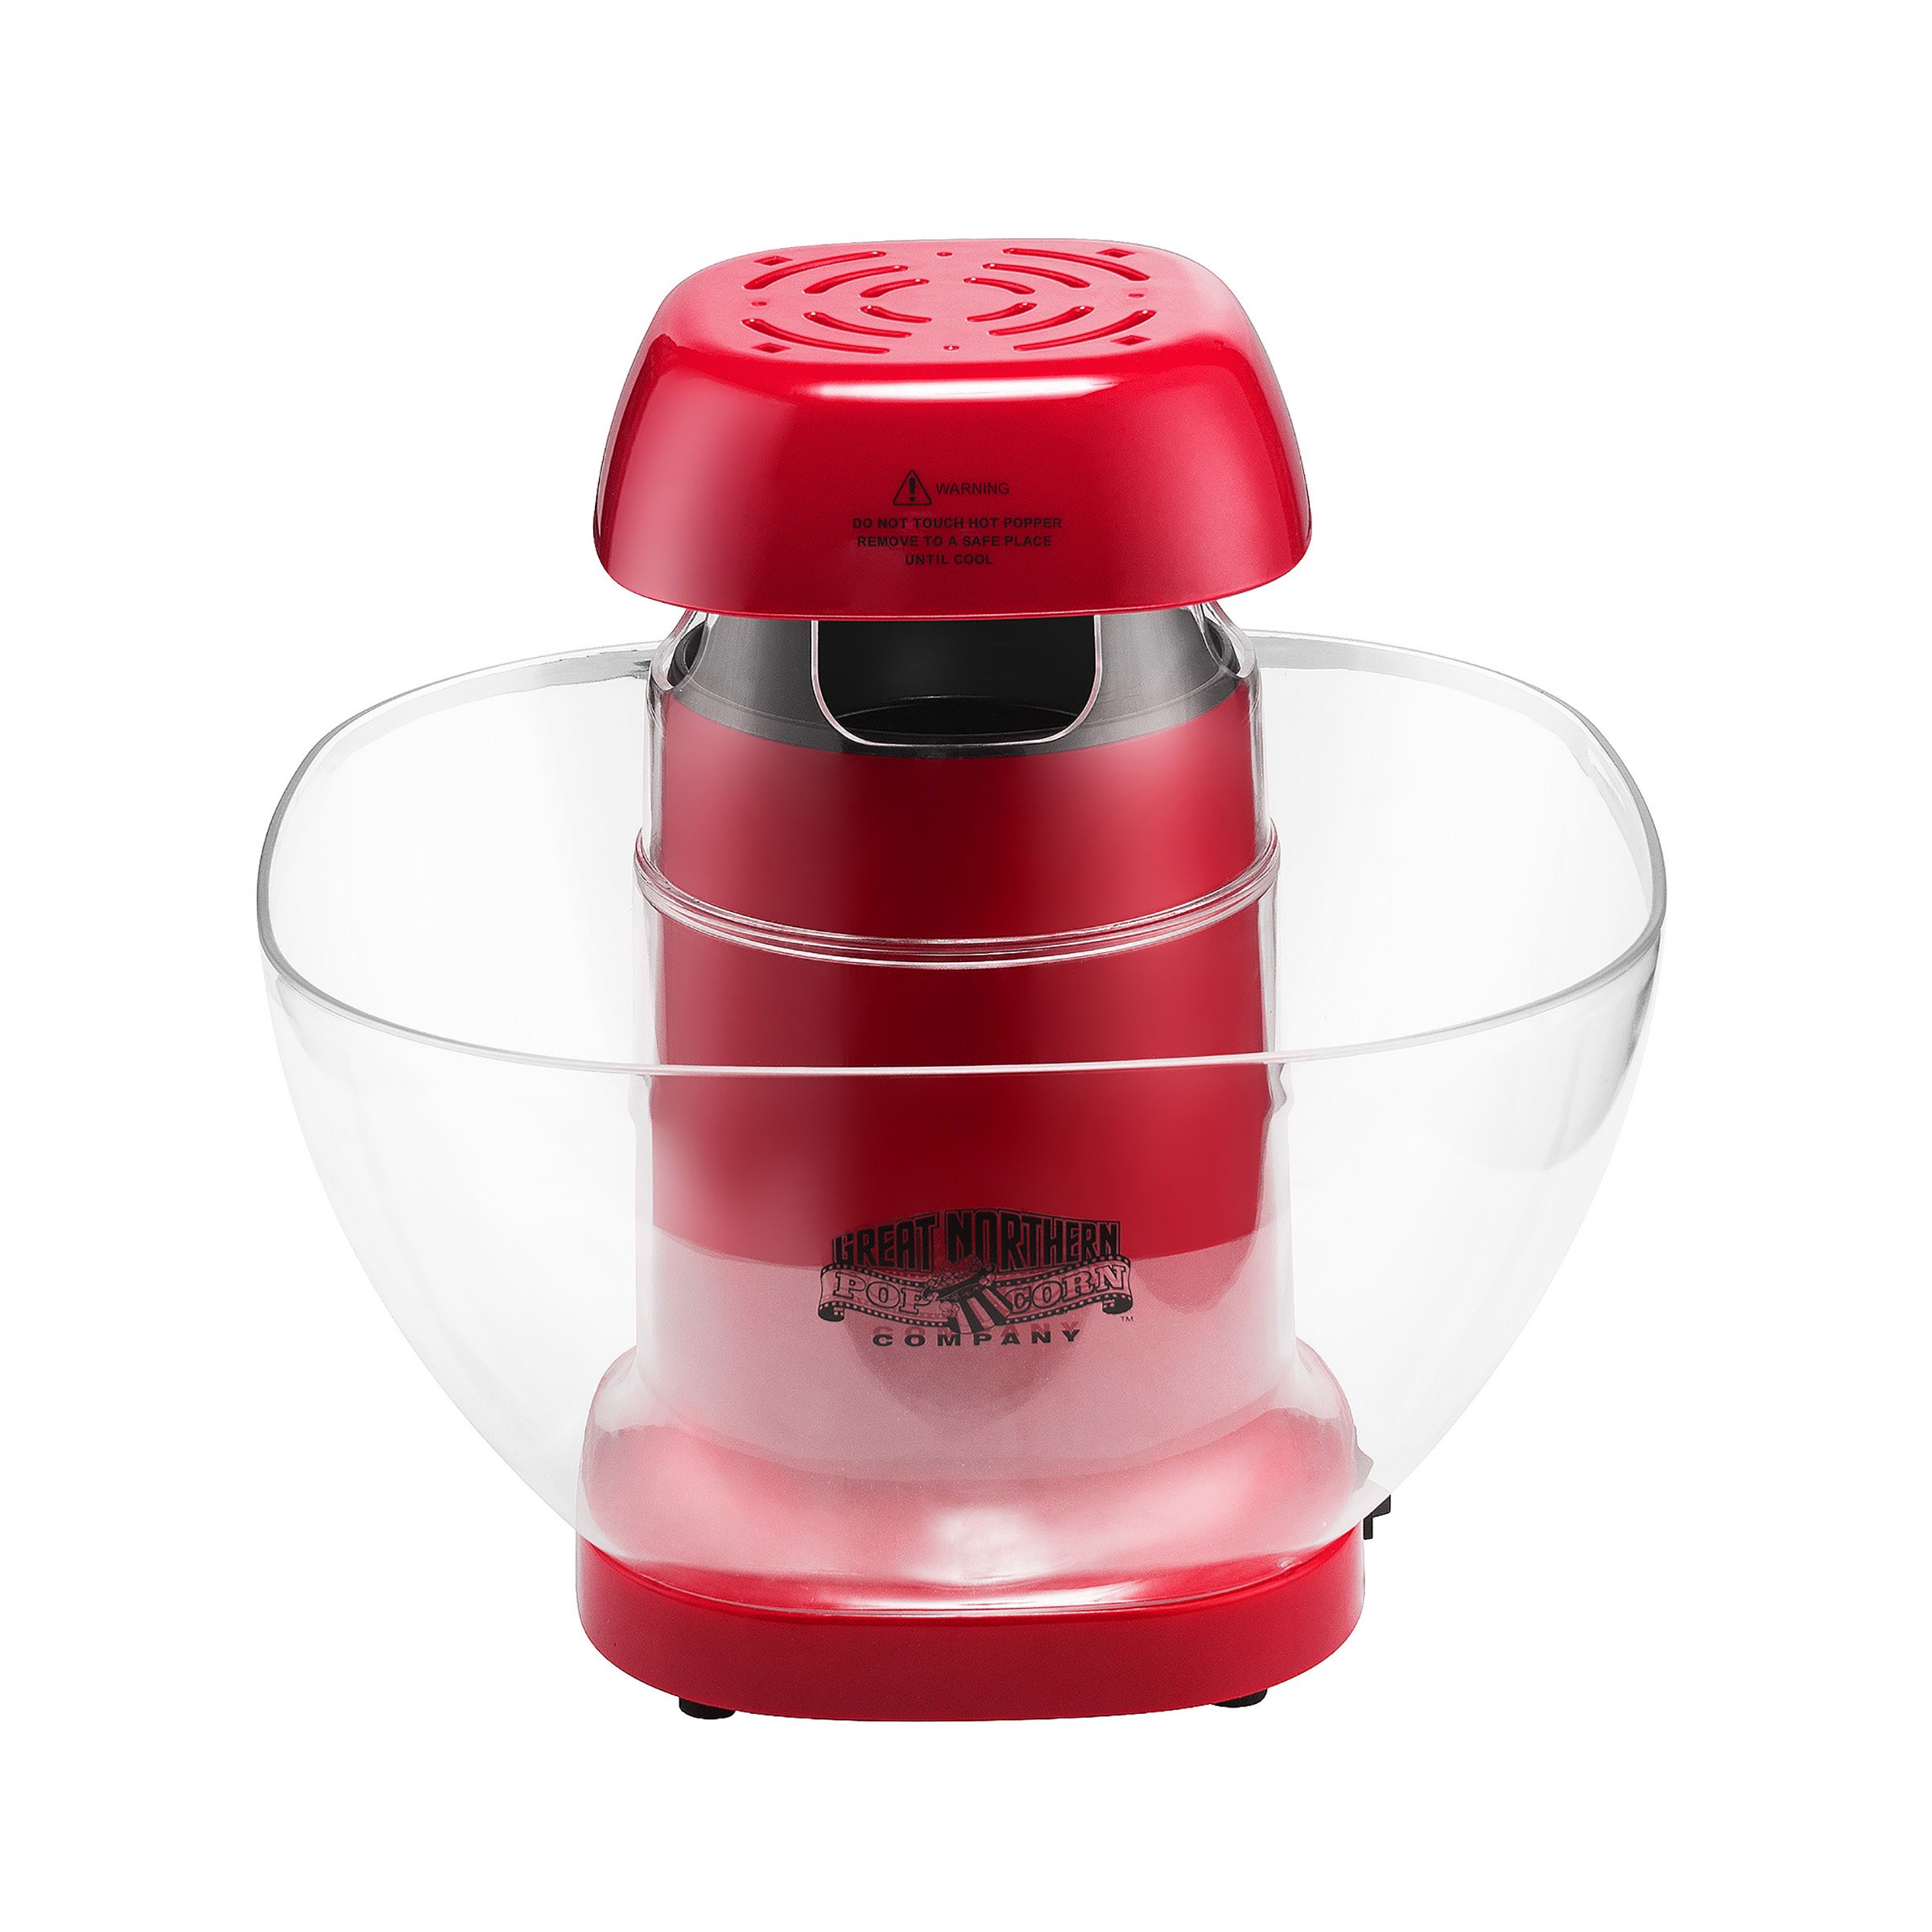 Popkin Hot Air Popper by Great Northern Popcorn